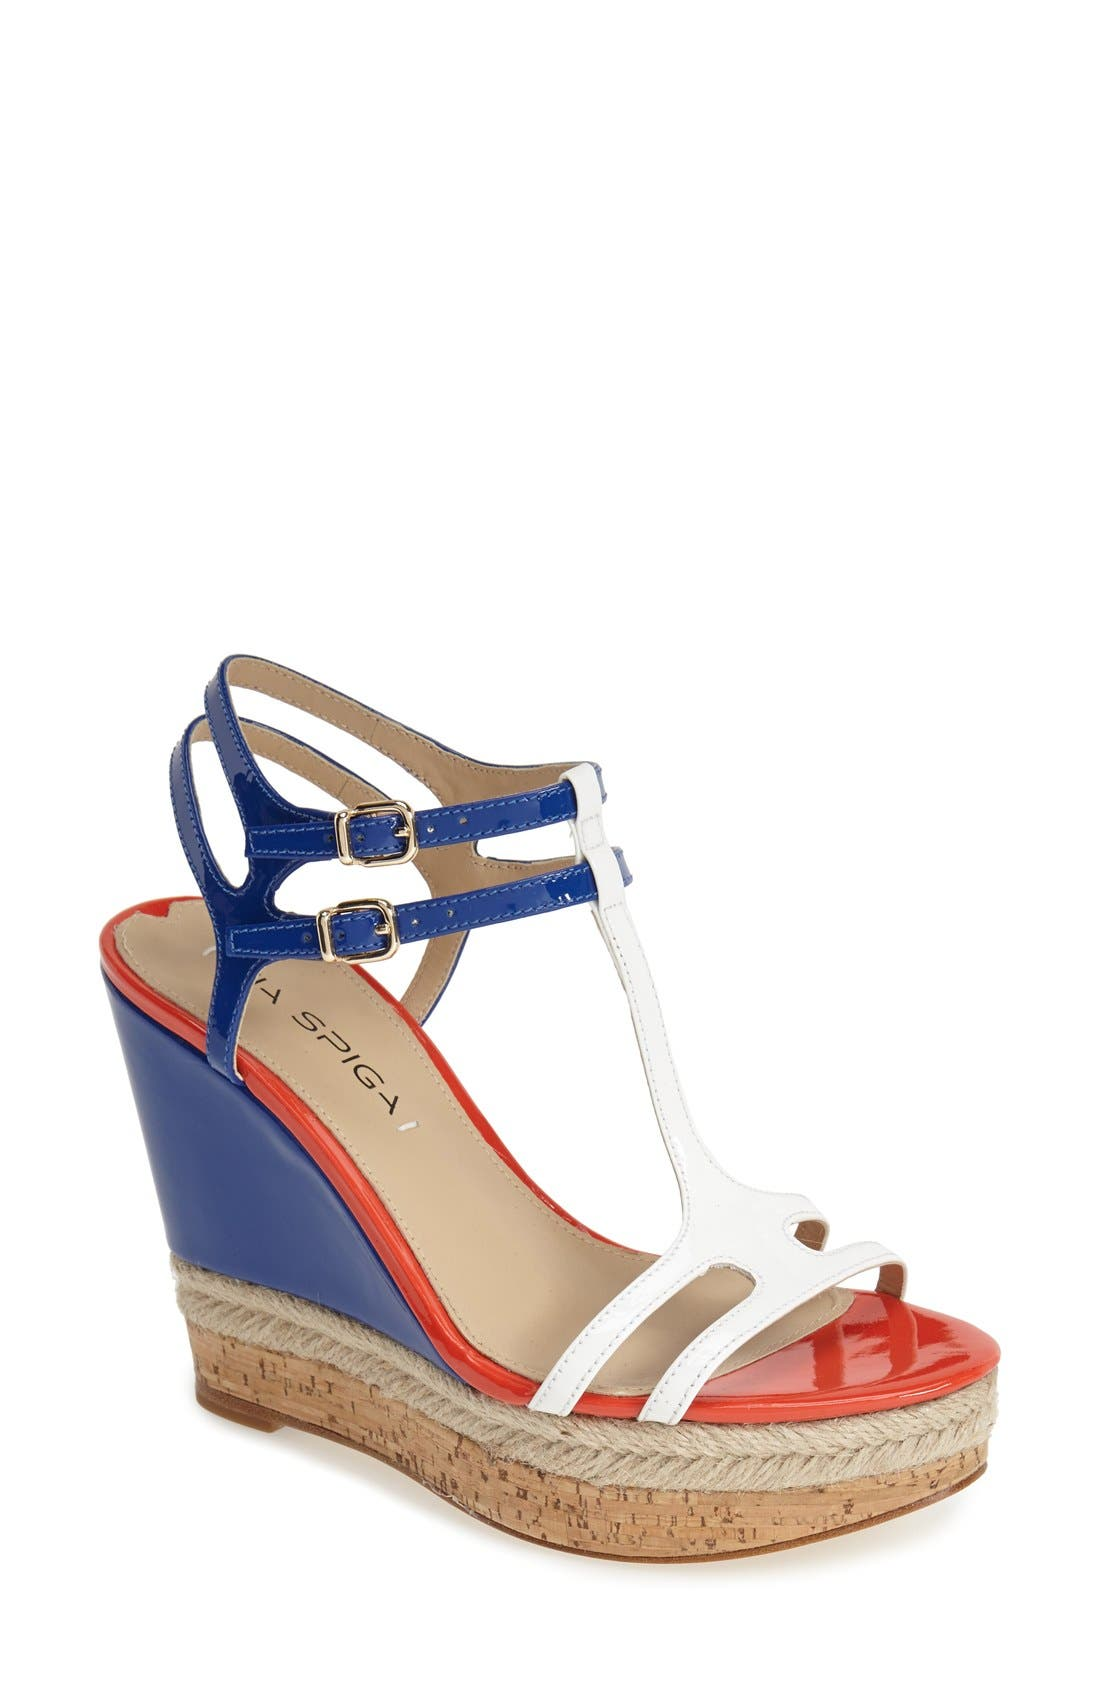 Main Image - Via Spiga 'Meza' Leather Dual Ankle Strap Platform Wedge (Women) (Nordstrom Exclusive)